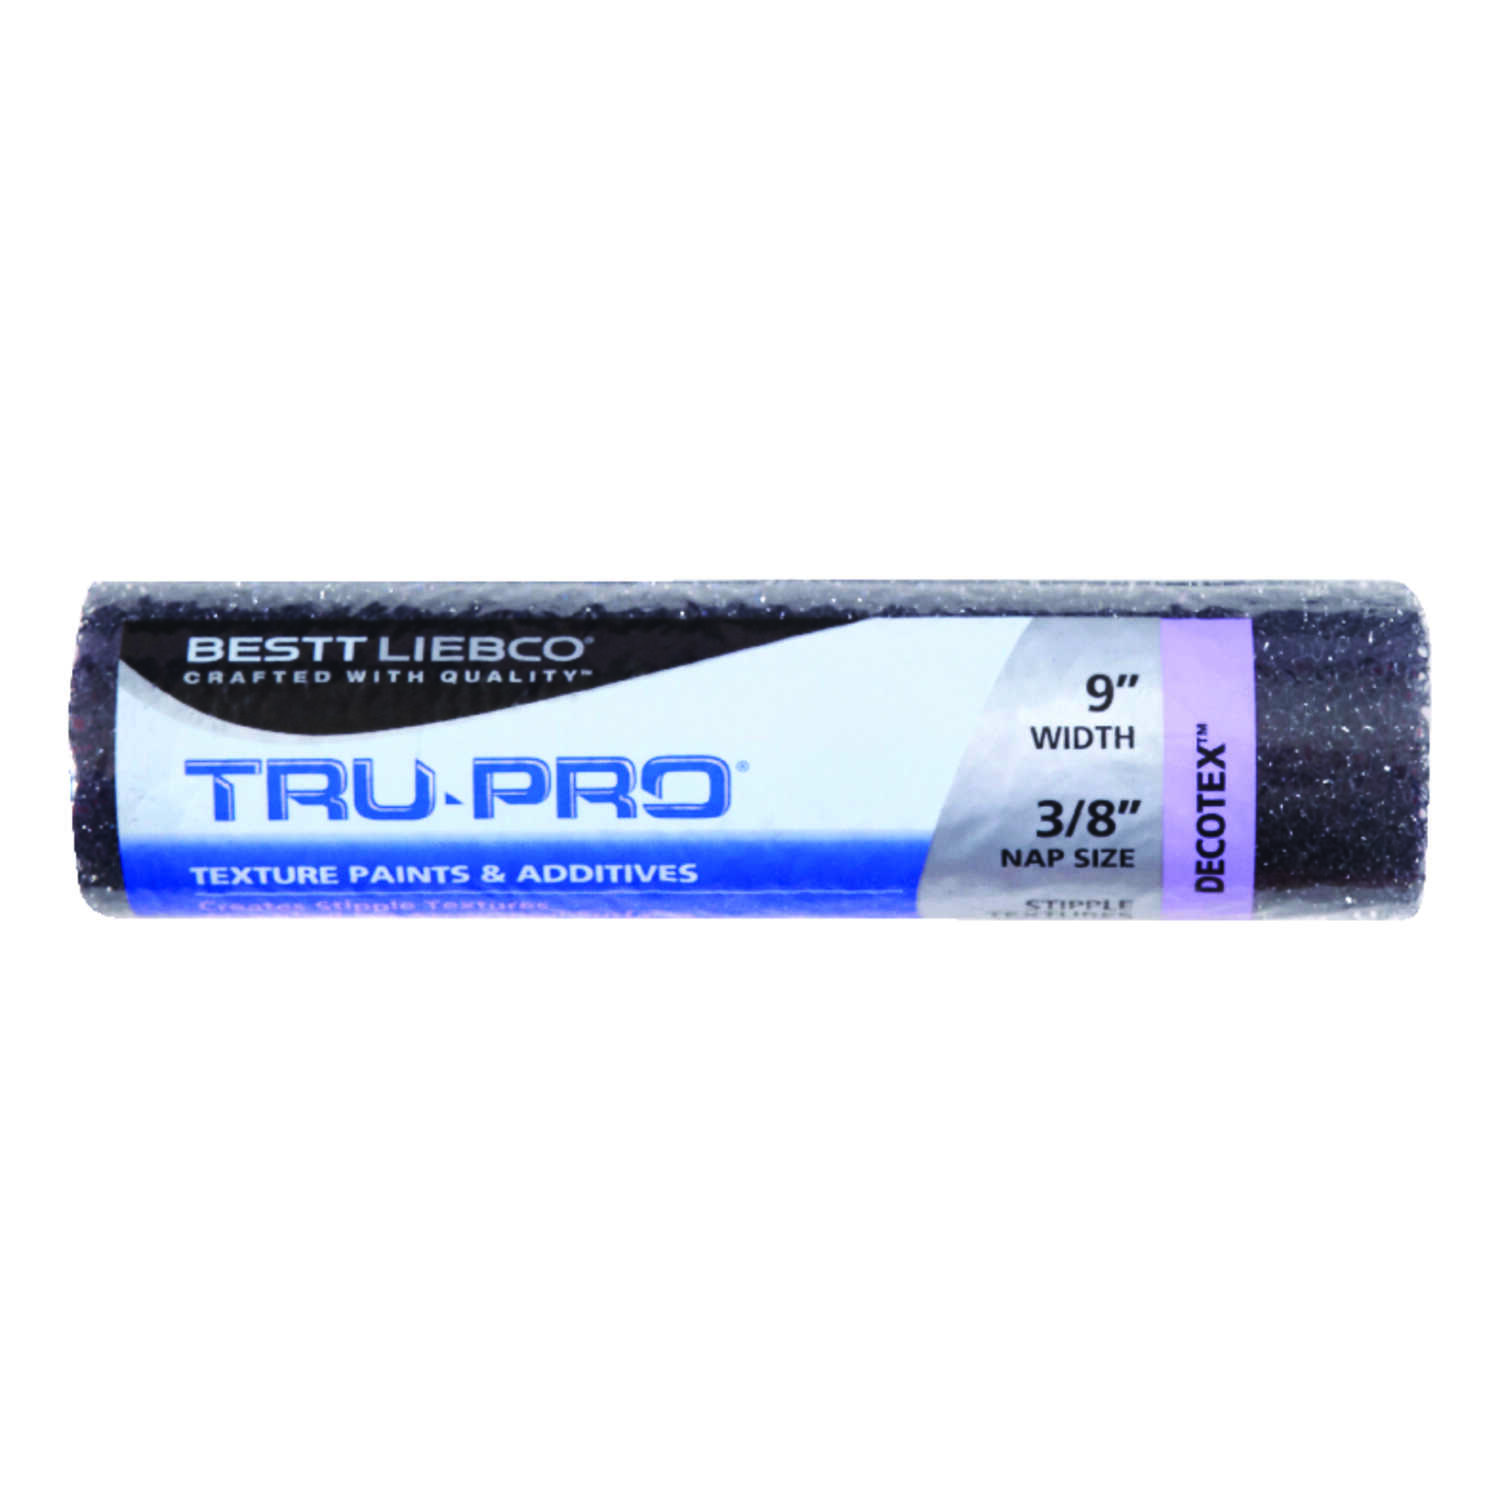 Bestt Liebco  Tru-Pro  Reticulated Poly  3/8 in.  x 9 in. W Paint Roller Cover  For Texture Surfaces